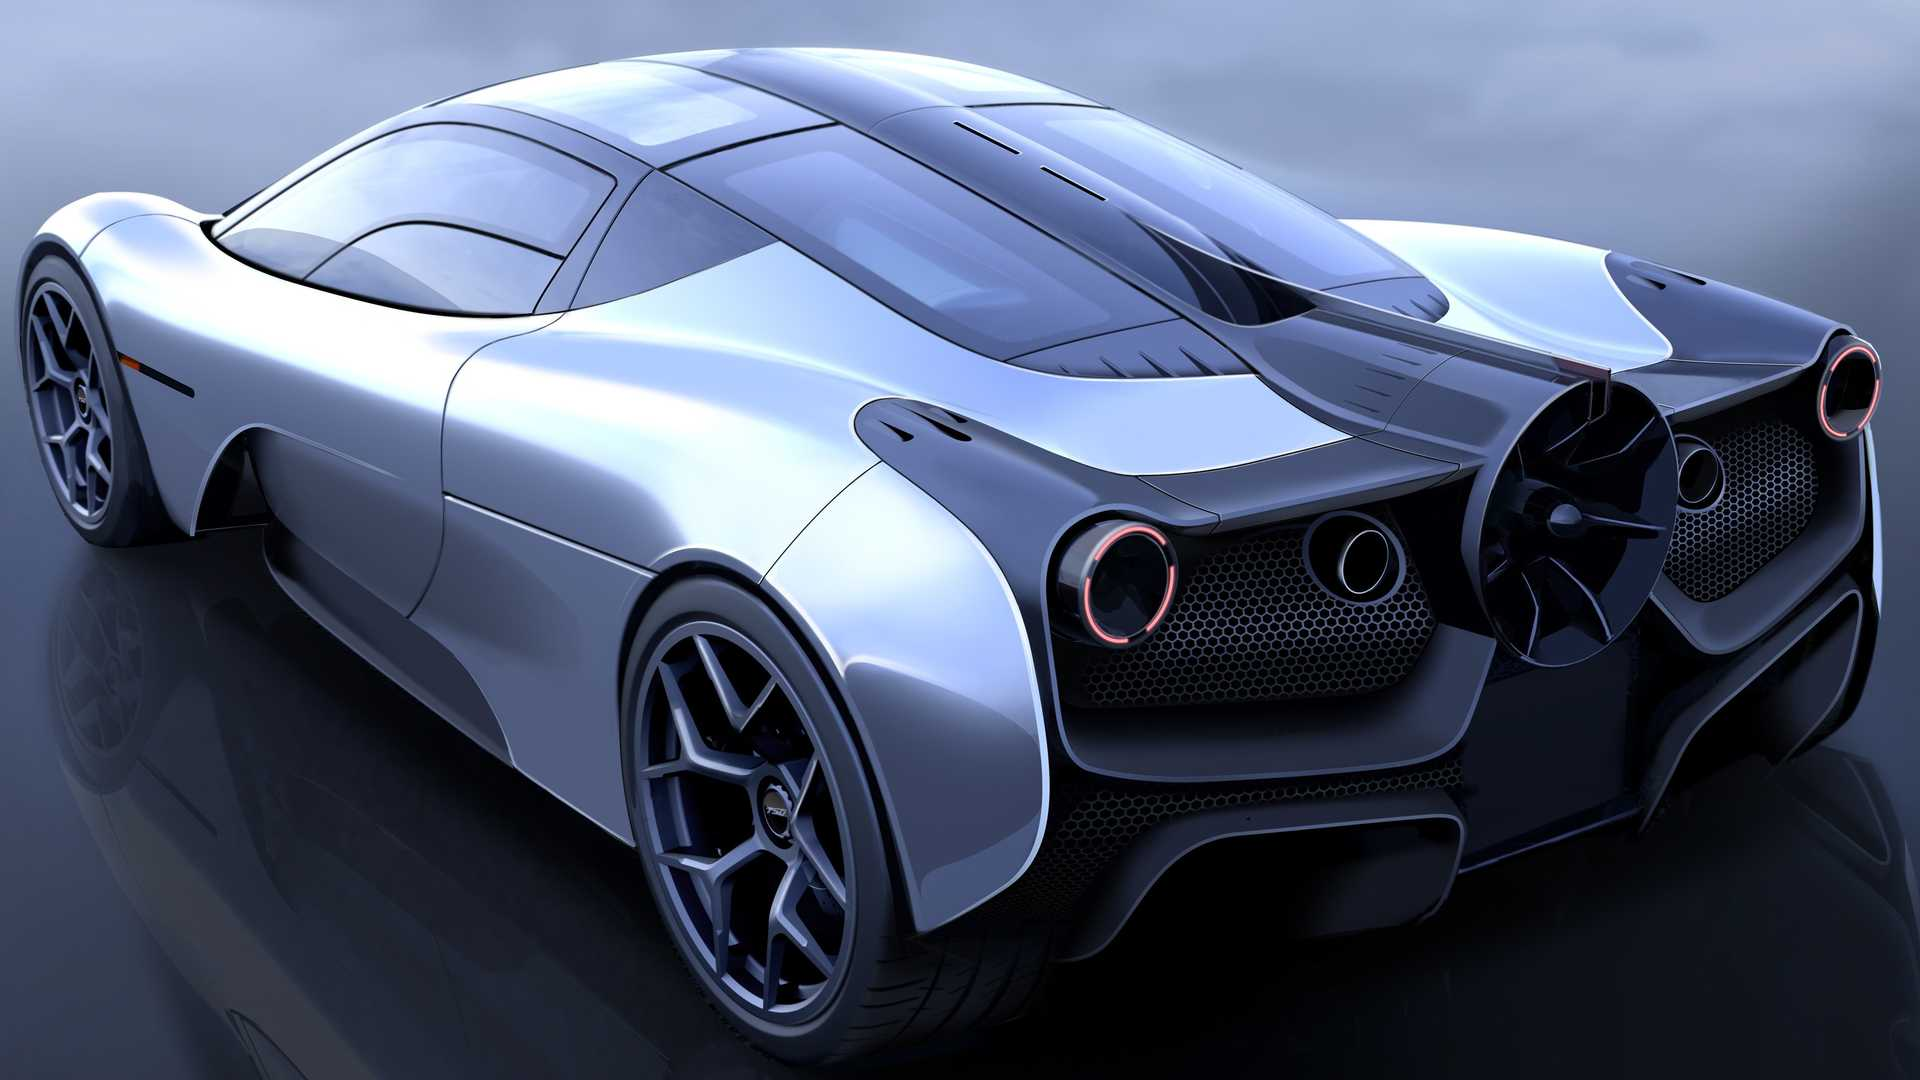 Gordon Murray, the creator of the original McLaren F1, announced several months ago that he wanted to produce a 'true' successor to the iconic supercar. After a series of sketches and schematics, he revealed the first 3D image of his dream vehicle today.